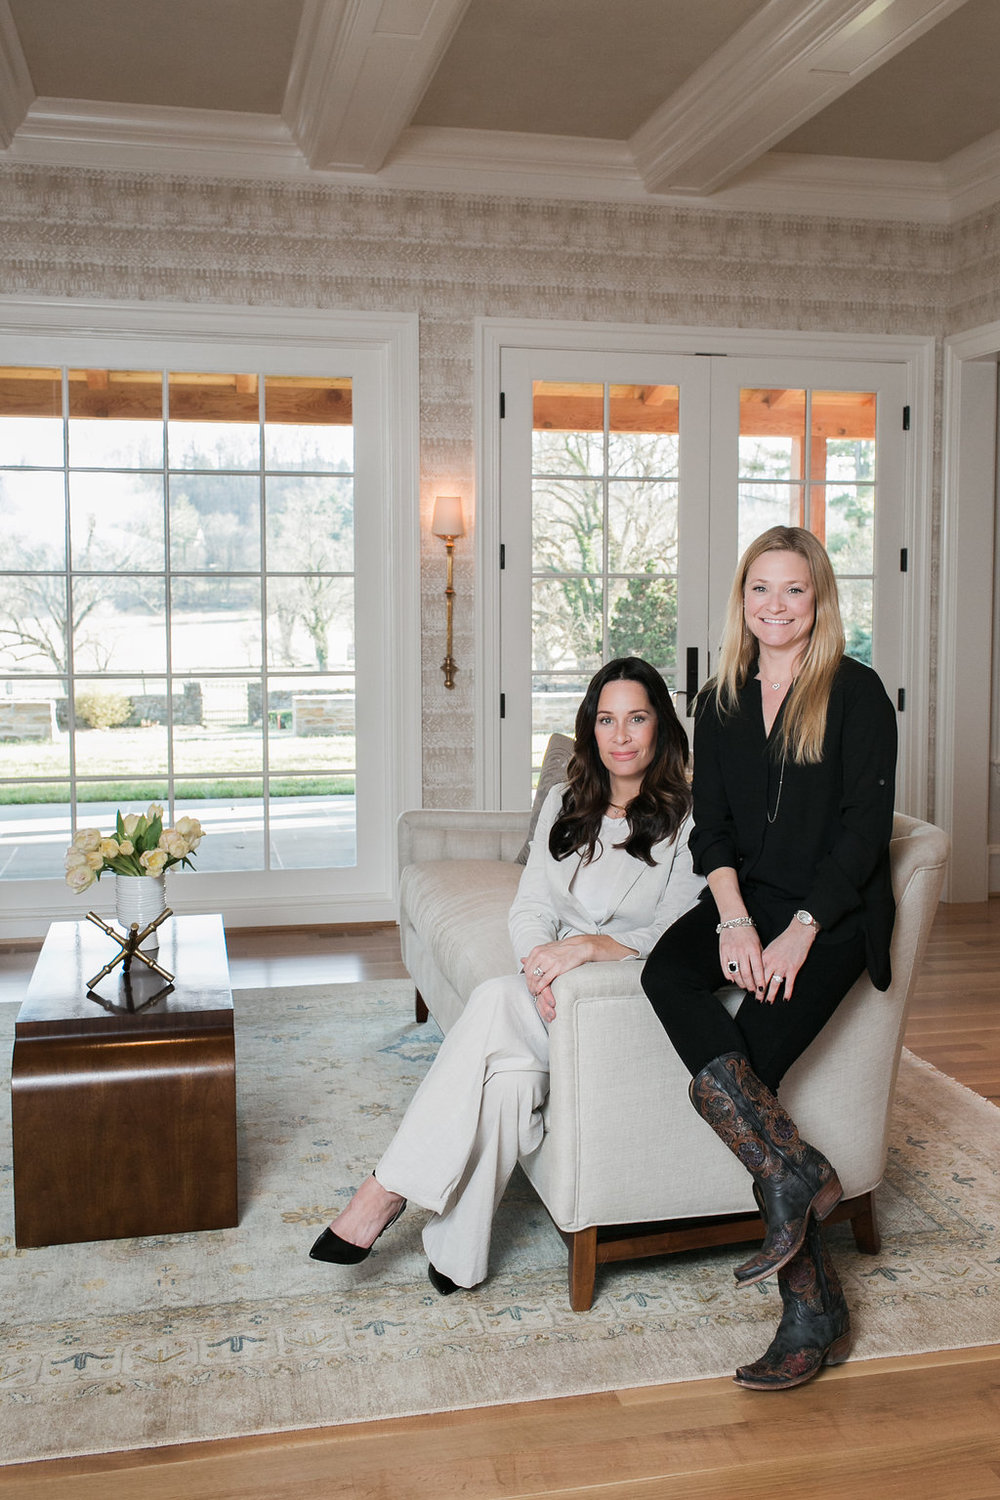 Juliette Palarea of JPStyles with her client of Meadowdale